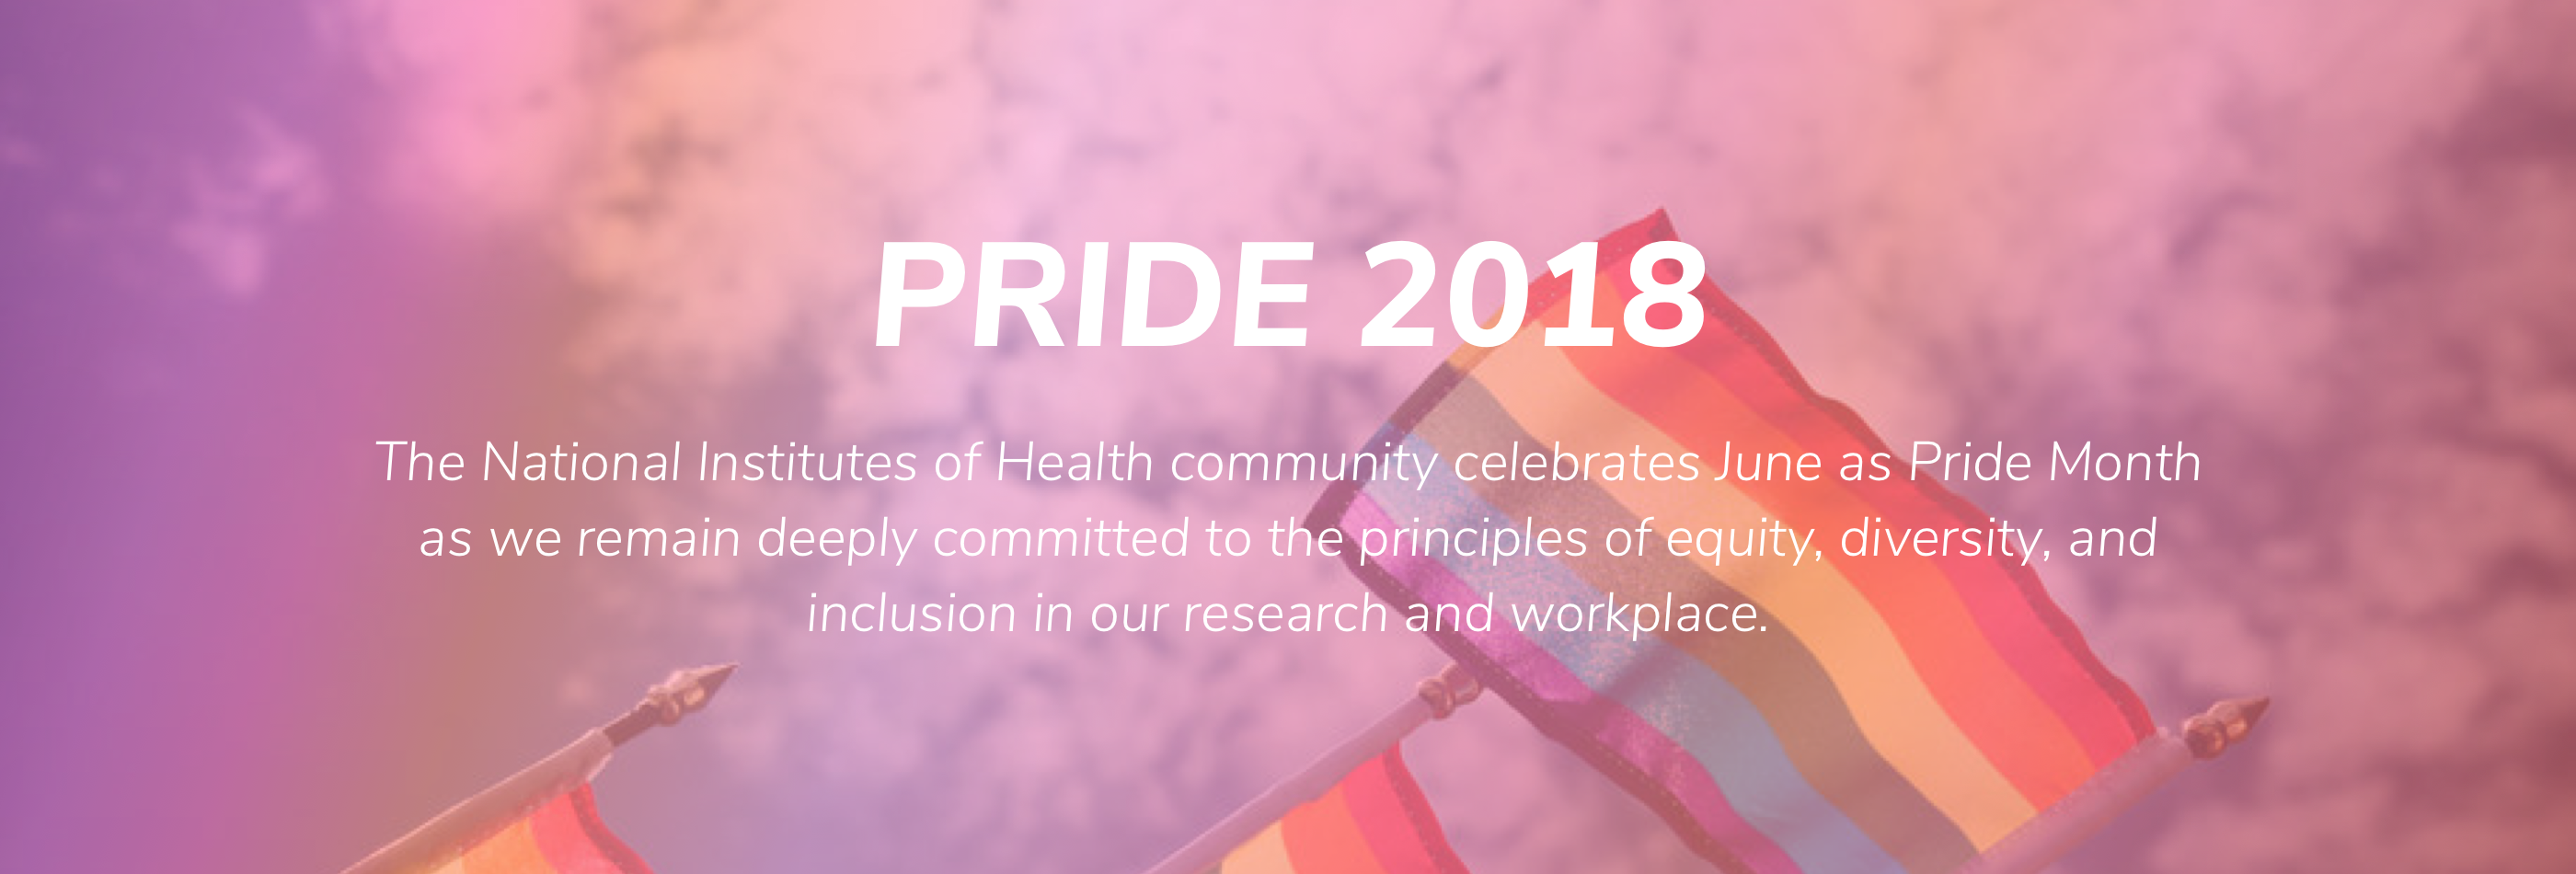 PRIDE 2018. The NIH is pleased to celebrate June as Pride Month as we remain deeply committed to the principles of equity, diversity, and inclusion in our research and our workplace.